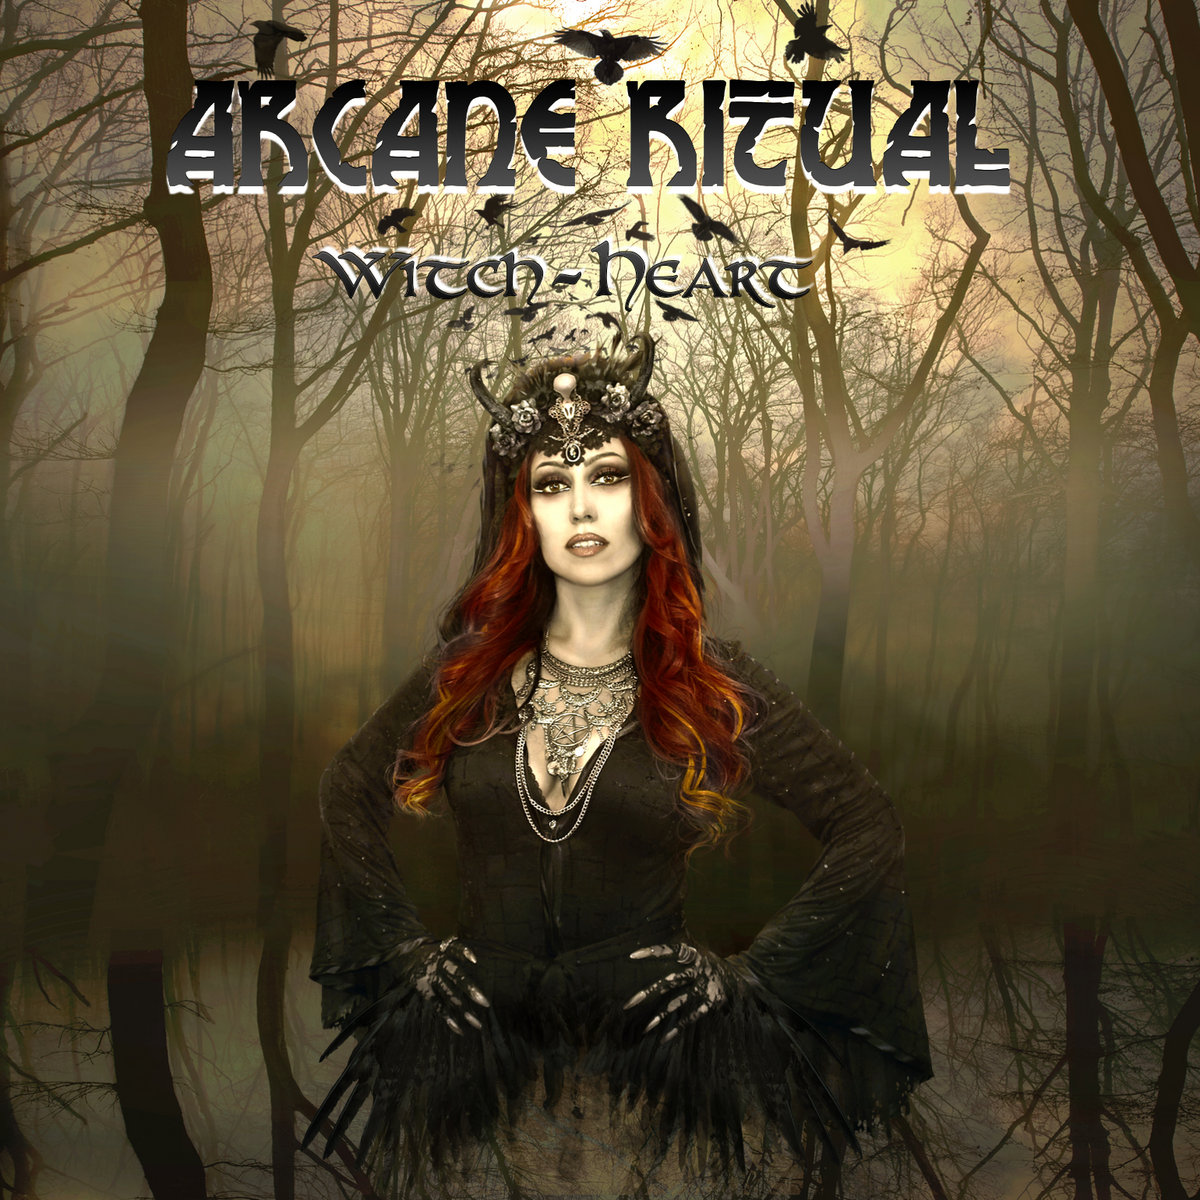 Witch-Heart [promo album medley] 2019 by Arcane Ritual